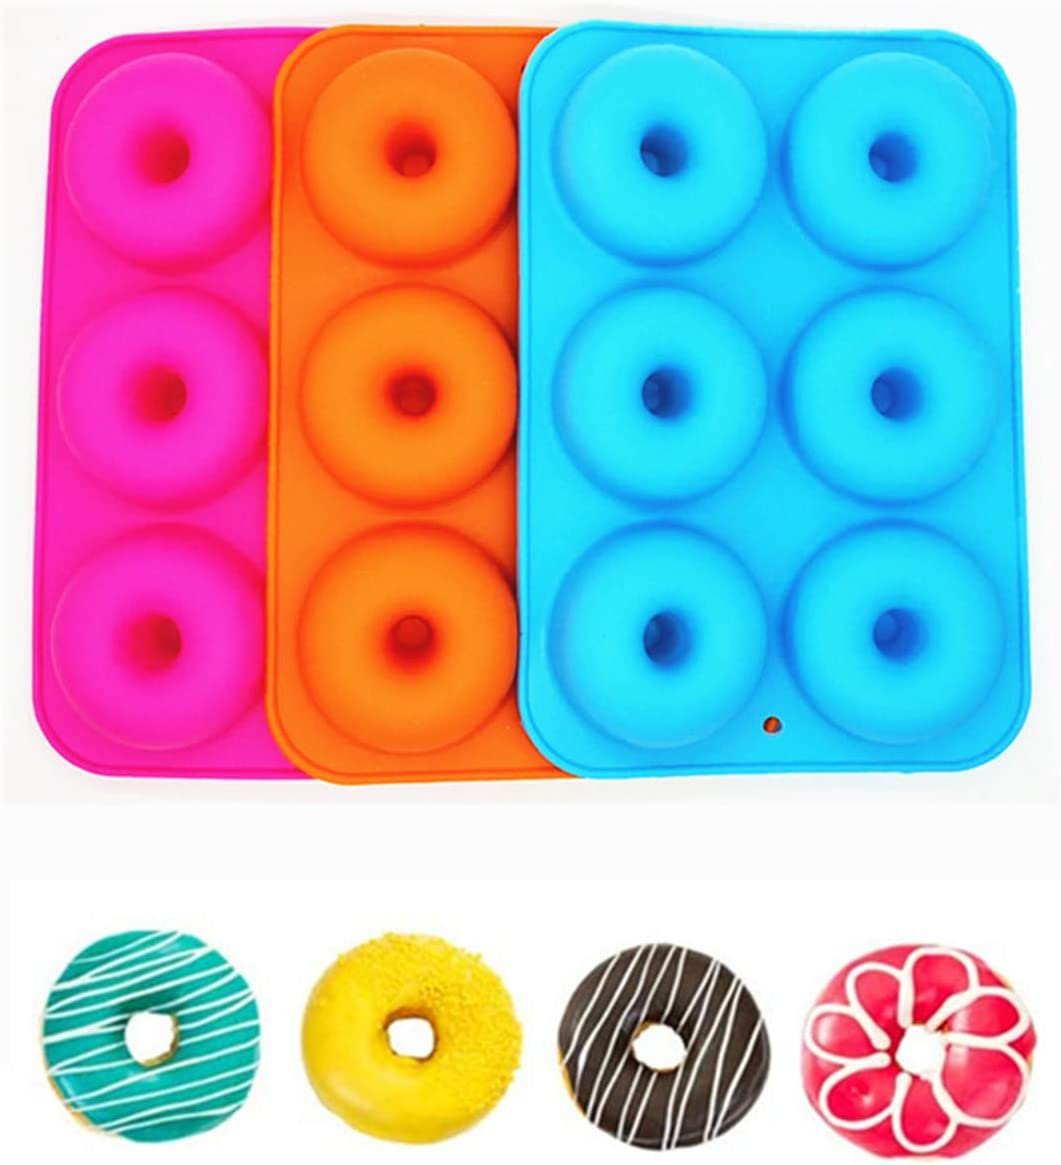 3 Pcs Silicone Donut Pan,Nonstick Silicone Donut Mold for Baking Shaped Doughnuts,Cake Biscuit Bagels